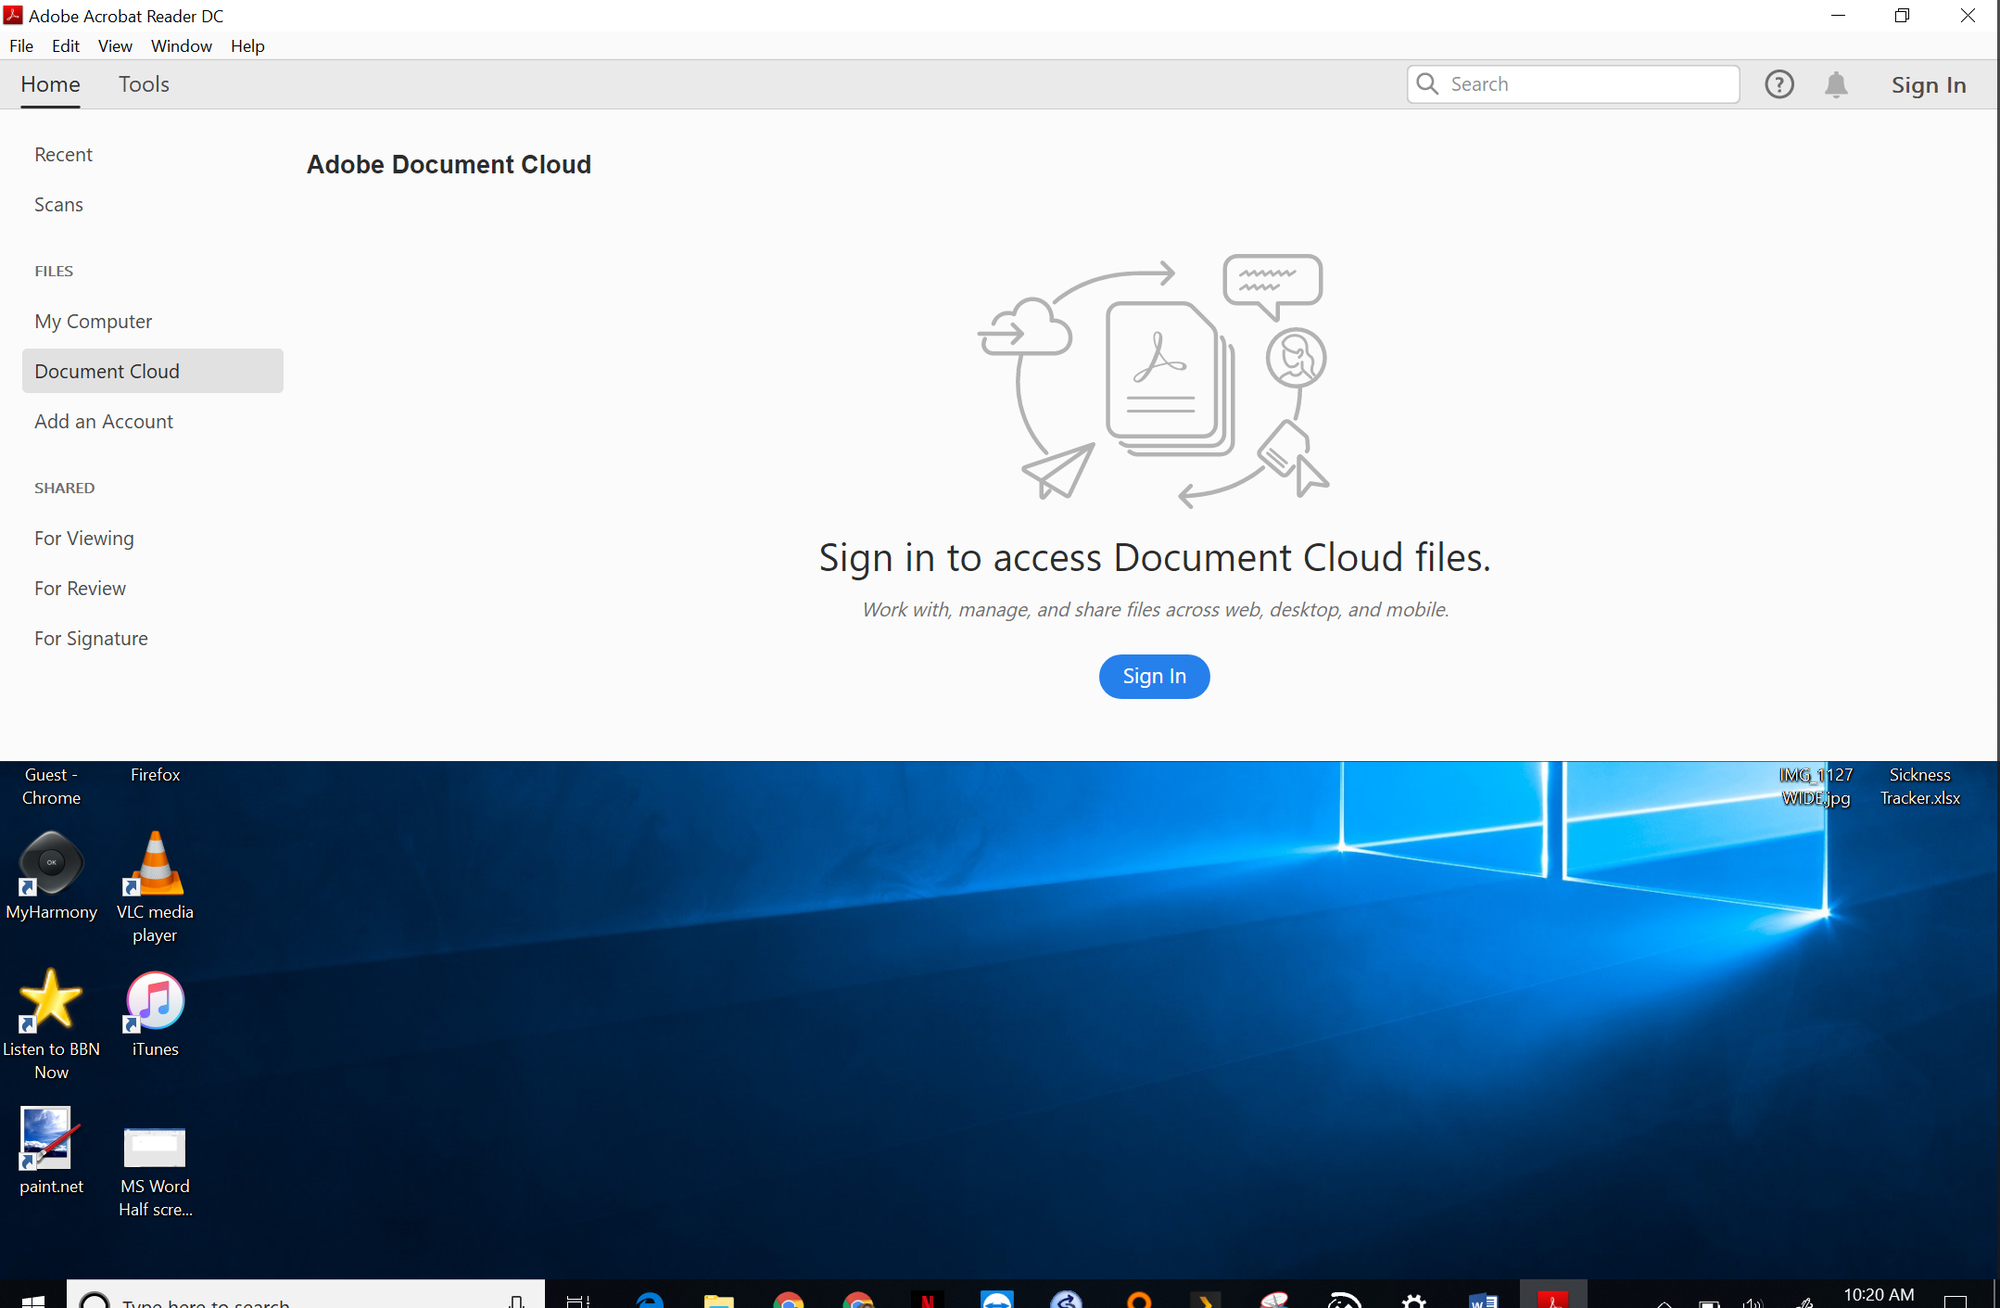 Windows 10 all applications opening half screen anchored to the top 06d18509-b08c-4190-ba81-568932df8902?upload=true.png